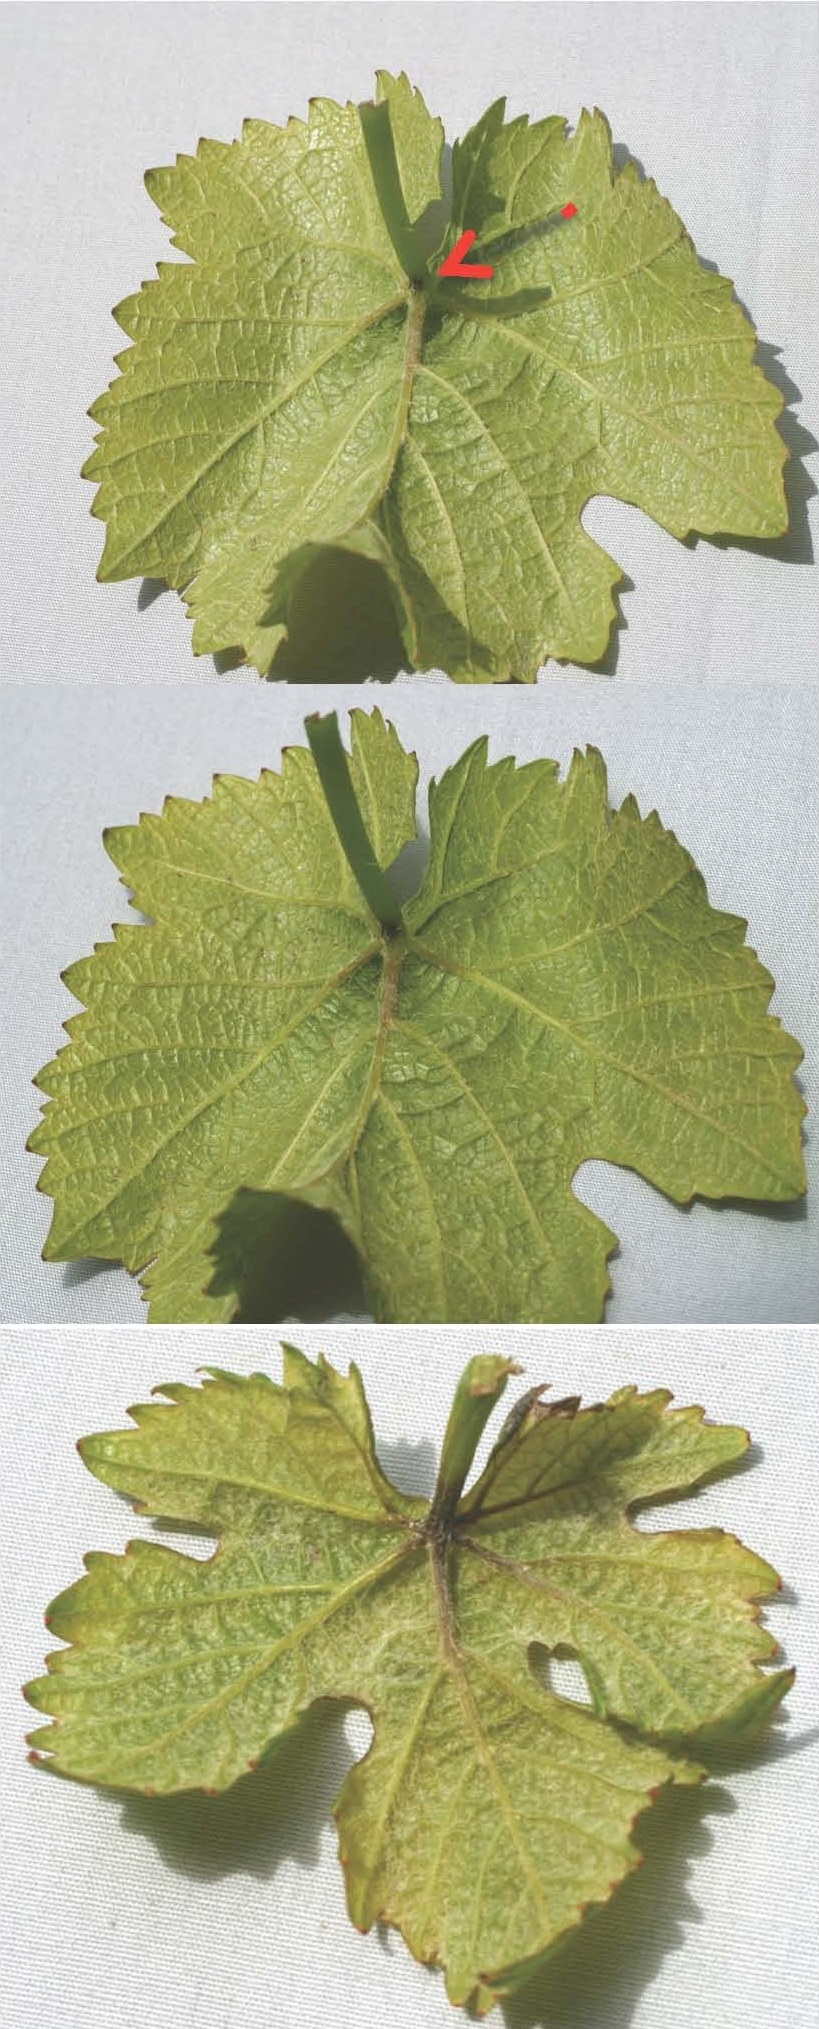 Pinot Leaf Curl Salinas Valley Agriculture Anr Blogs